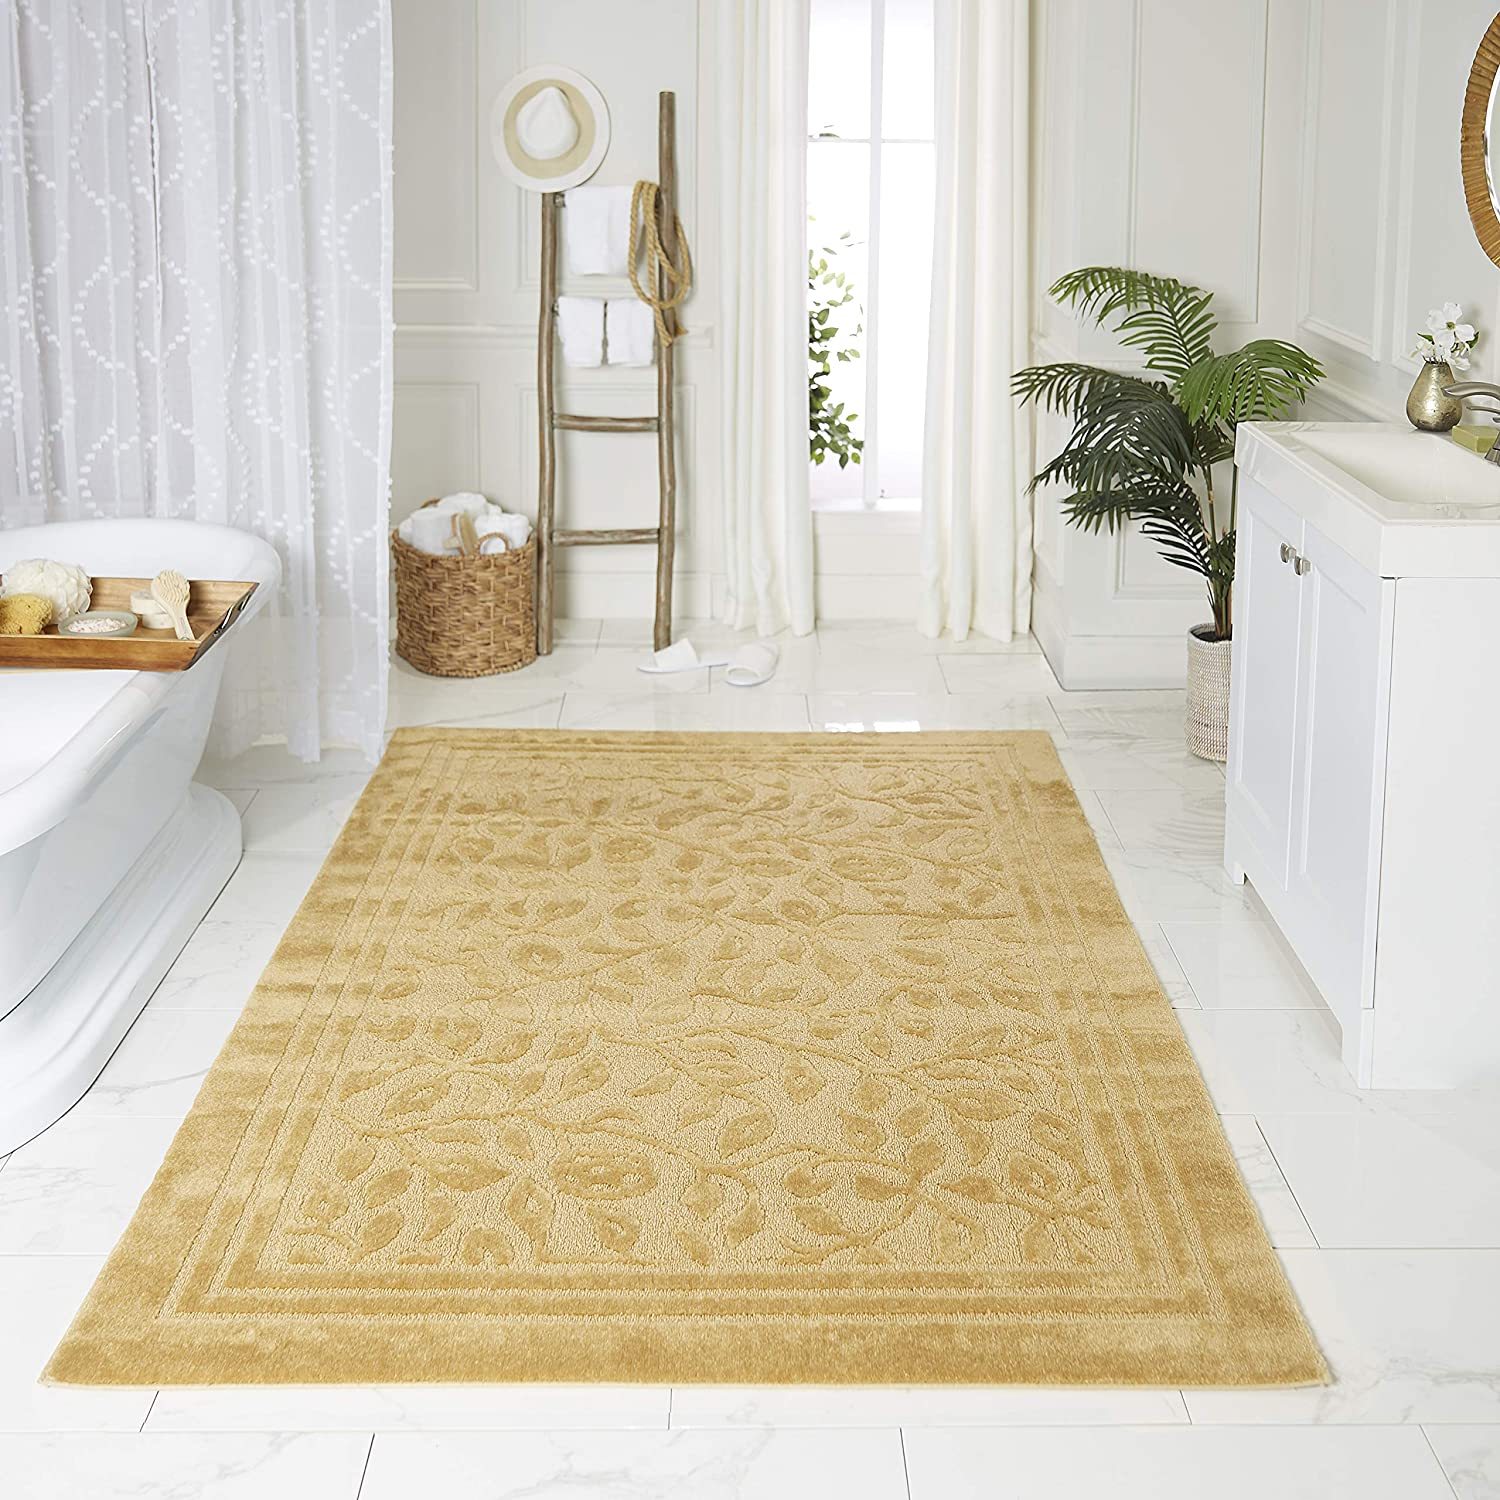 Better Homes and Gardens Thick and Plush Bath Rug Brown Basket 21X34 Free Ship